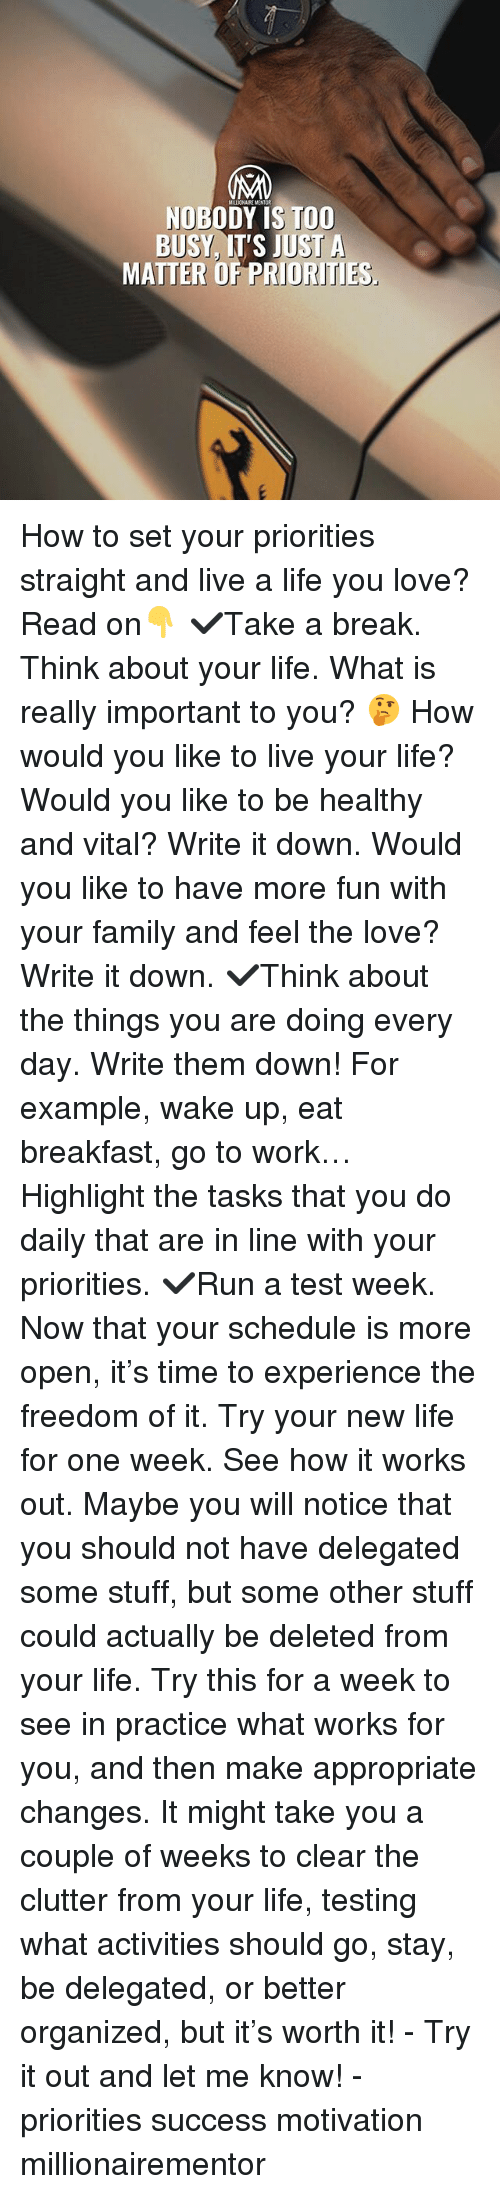 Family, Life, and Love: MILLIONAIRE MENTOR  NOBODY IS TOO  BUSY IT'S JUST A  MATTER OF PRIORITIES How to set your priorities straight and live a life you love? Read on👇 ✔️Take a break. Think about your life. What is really important to you? 🤔 How would you like to live your life? Would you like to be healthy and vital? Write it down. Would you like to have more fun with your family and feel the love? Write it down. ✔️Think about the things you are doing every day. Write them down! For example, wake up, eat breakfast, go to work… Highlight the tasks that you do daily that are in line with your priorities. ✔️Run a test week. Now that your schedule is more open, it's time to experience the freedom of it. Try your new life for one week. See how it works out. Maybe you will notice that you should not have delegated some stuff, but some other stuff could actually be deleted from your life. Try this for a week to see in practice what works for you, and then make appropriate changes. It might take you a couple of weeks to clear the clutter from your life, testing what activities should go, stay, be delegated, or better organized, but it's worth it! - Try it out and let me know! - priorities success motivation millionairementor